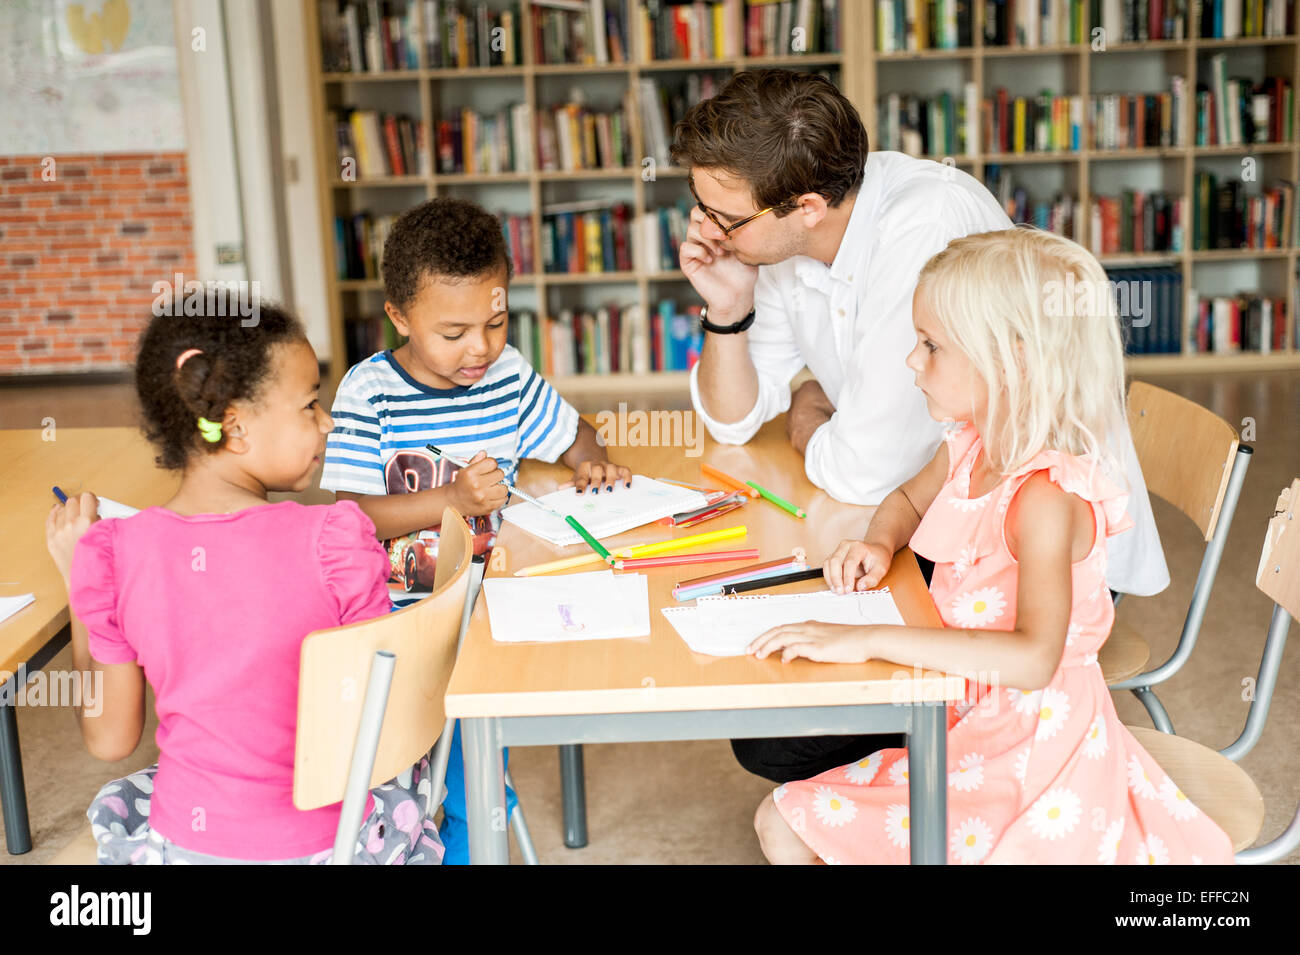 Teacher with students during art class - Stock Image